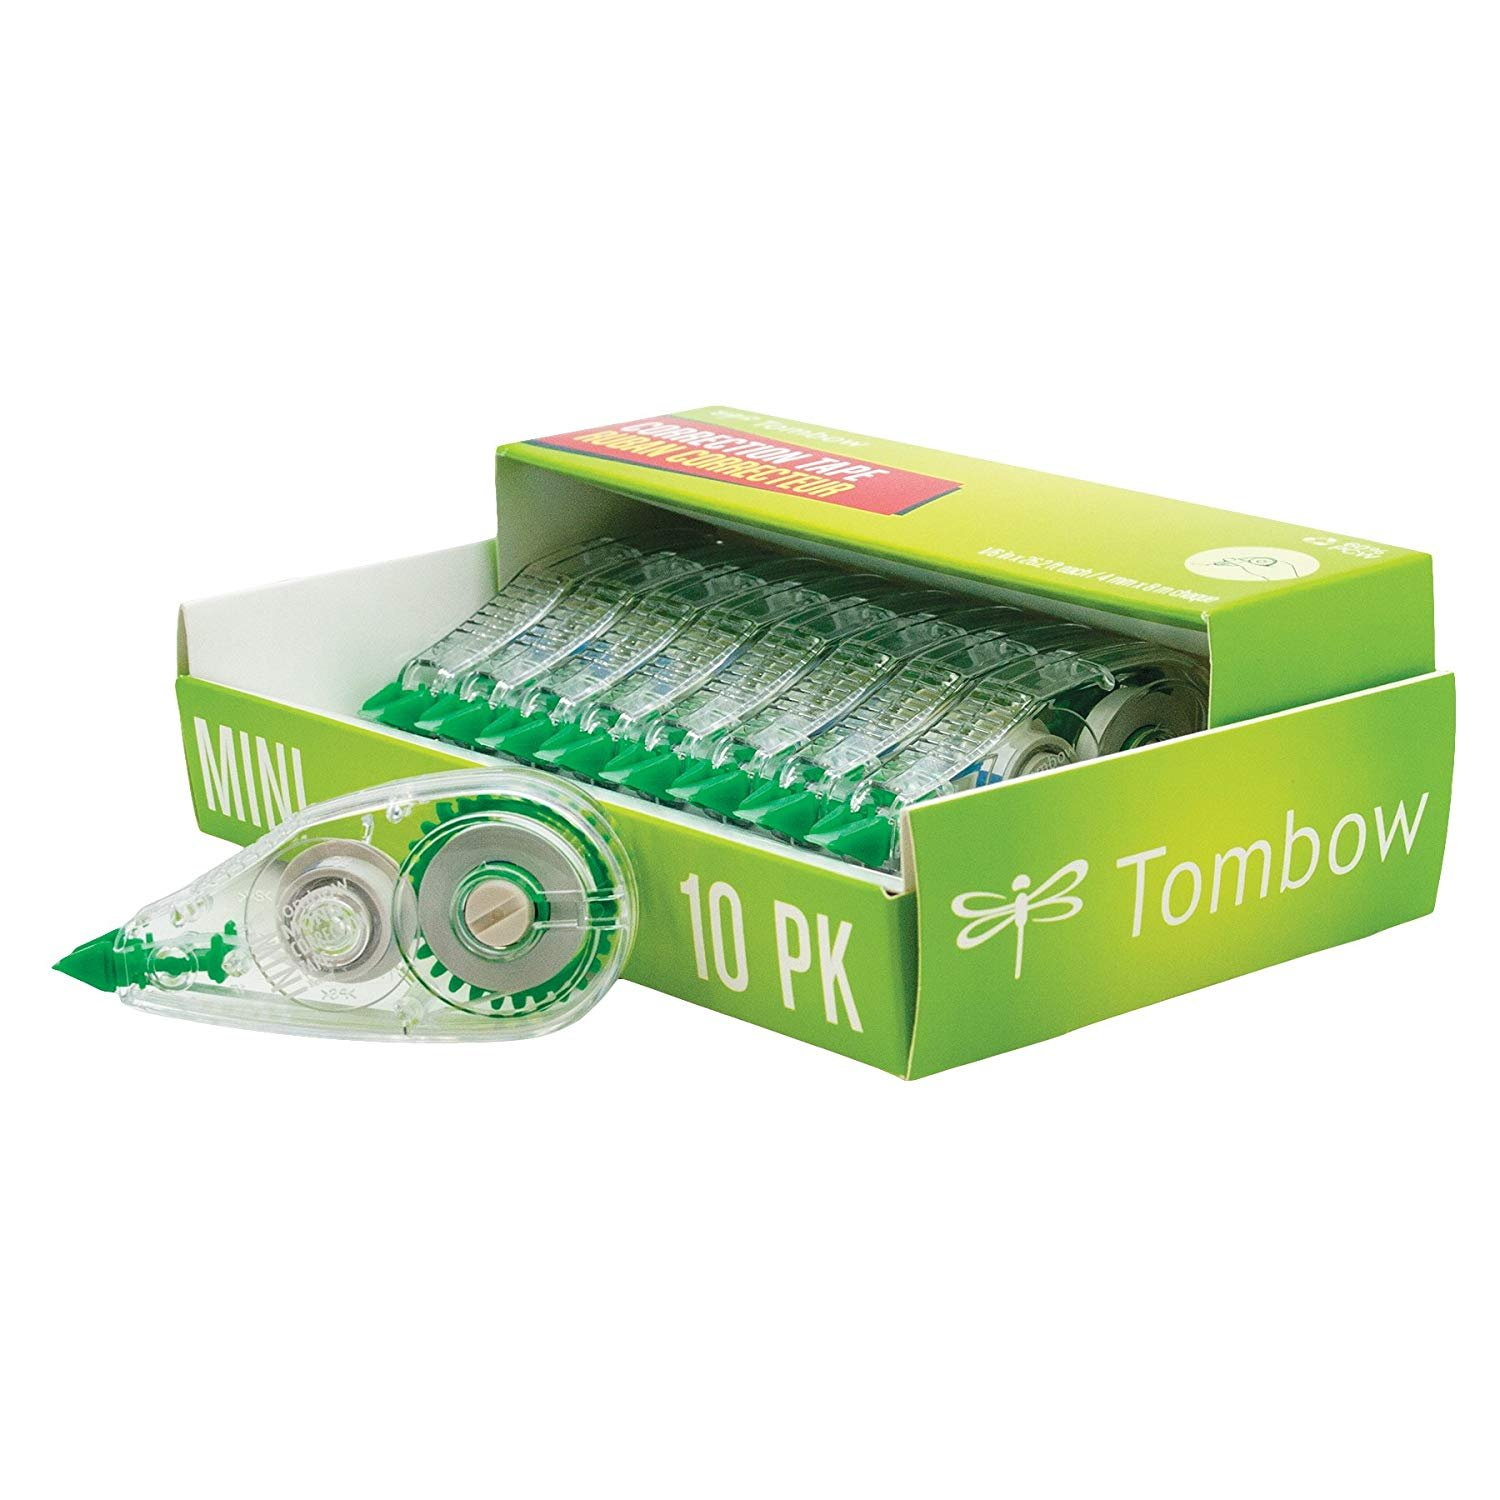 Tombow 68722 MONO Mini Correction Tape, 10-Pack. Easy to Use Applicator for Instant Corrections (3-Pack) by Tombow (Image #1)